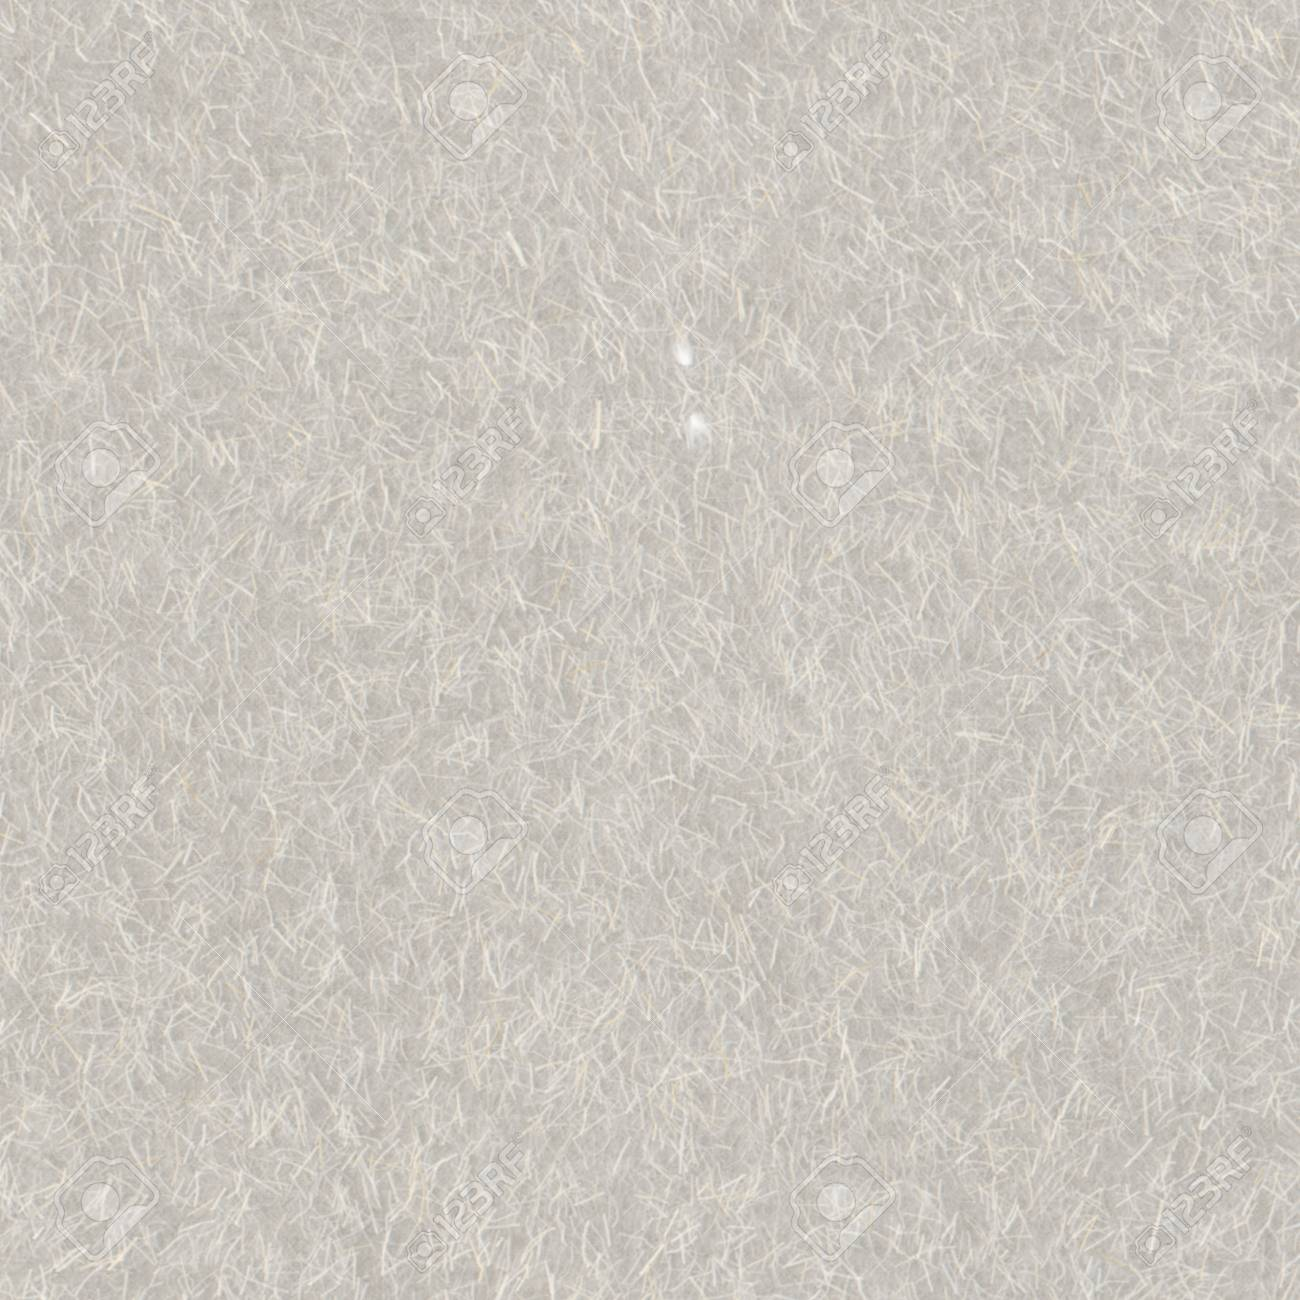 Beau Background For Wall Tiles, Texture, Floor Tiles, Nbackground For Wall Tiles,  Texture